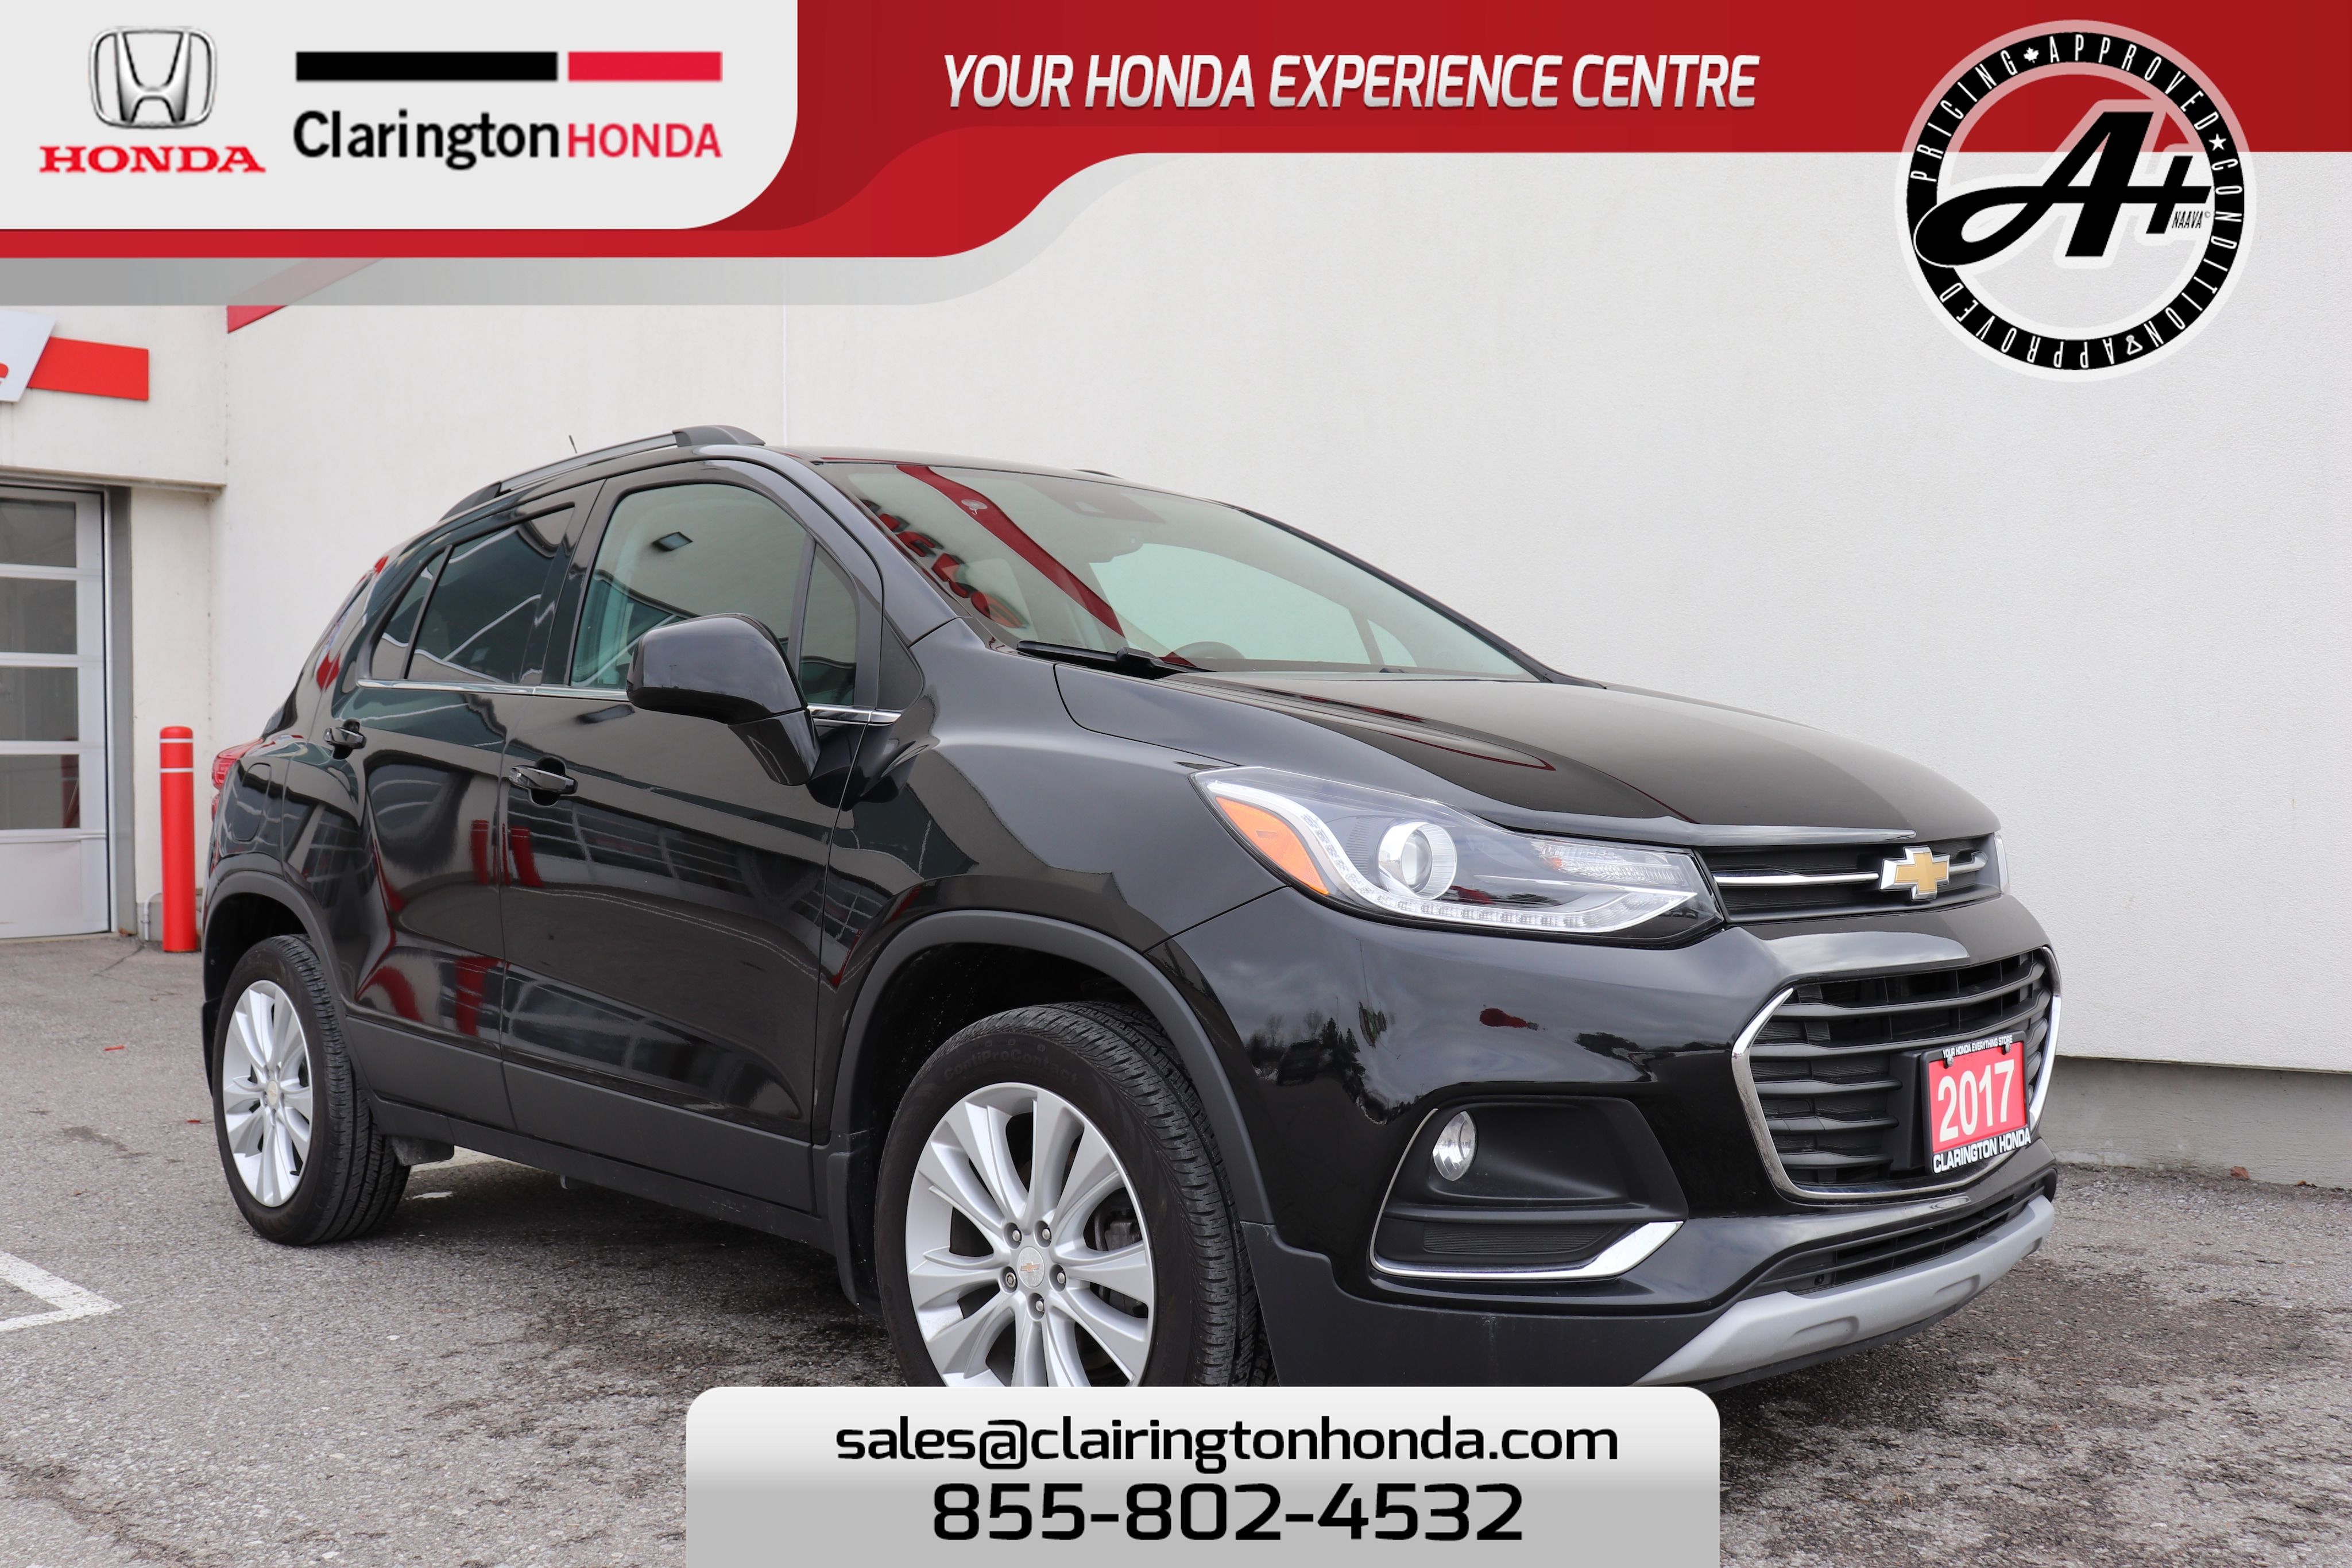 2017 Chevrolet Trax, LOW FINANCING RATE OFFERED! TAKE ADVANTAGE! Premier SUV